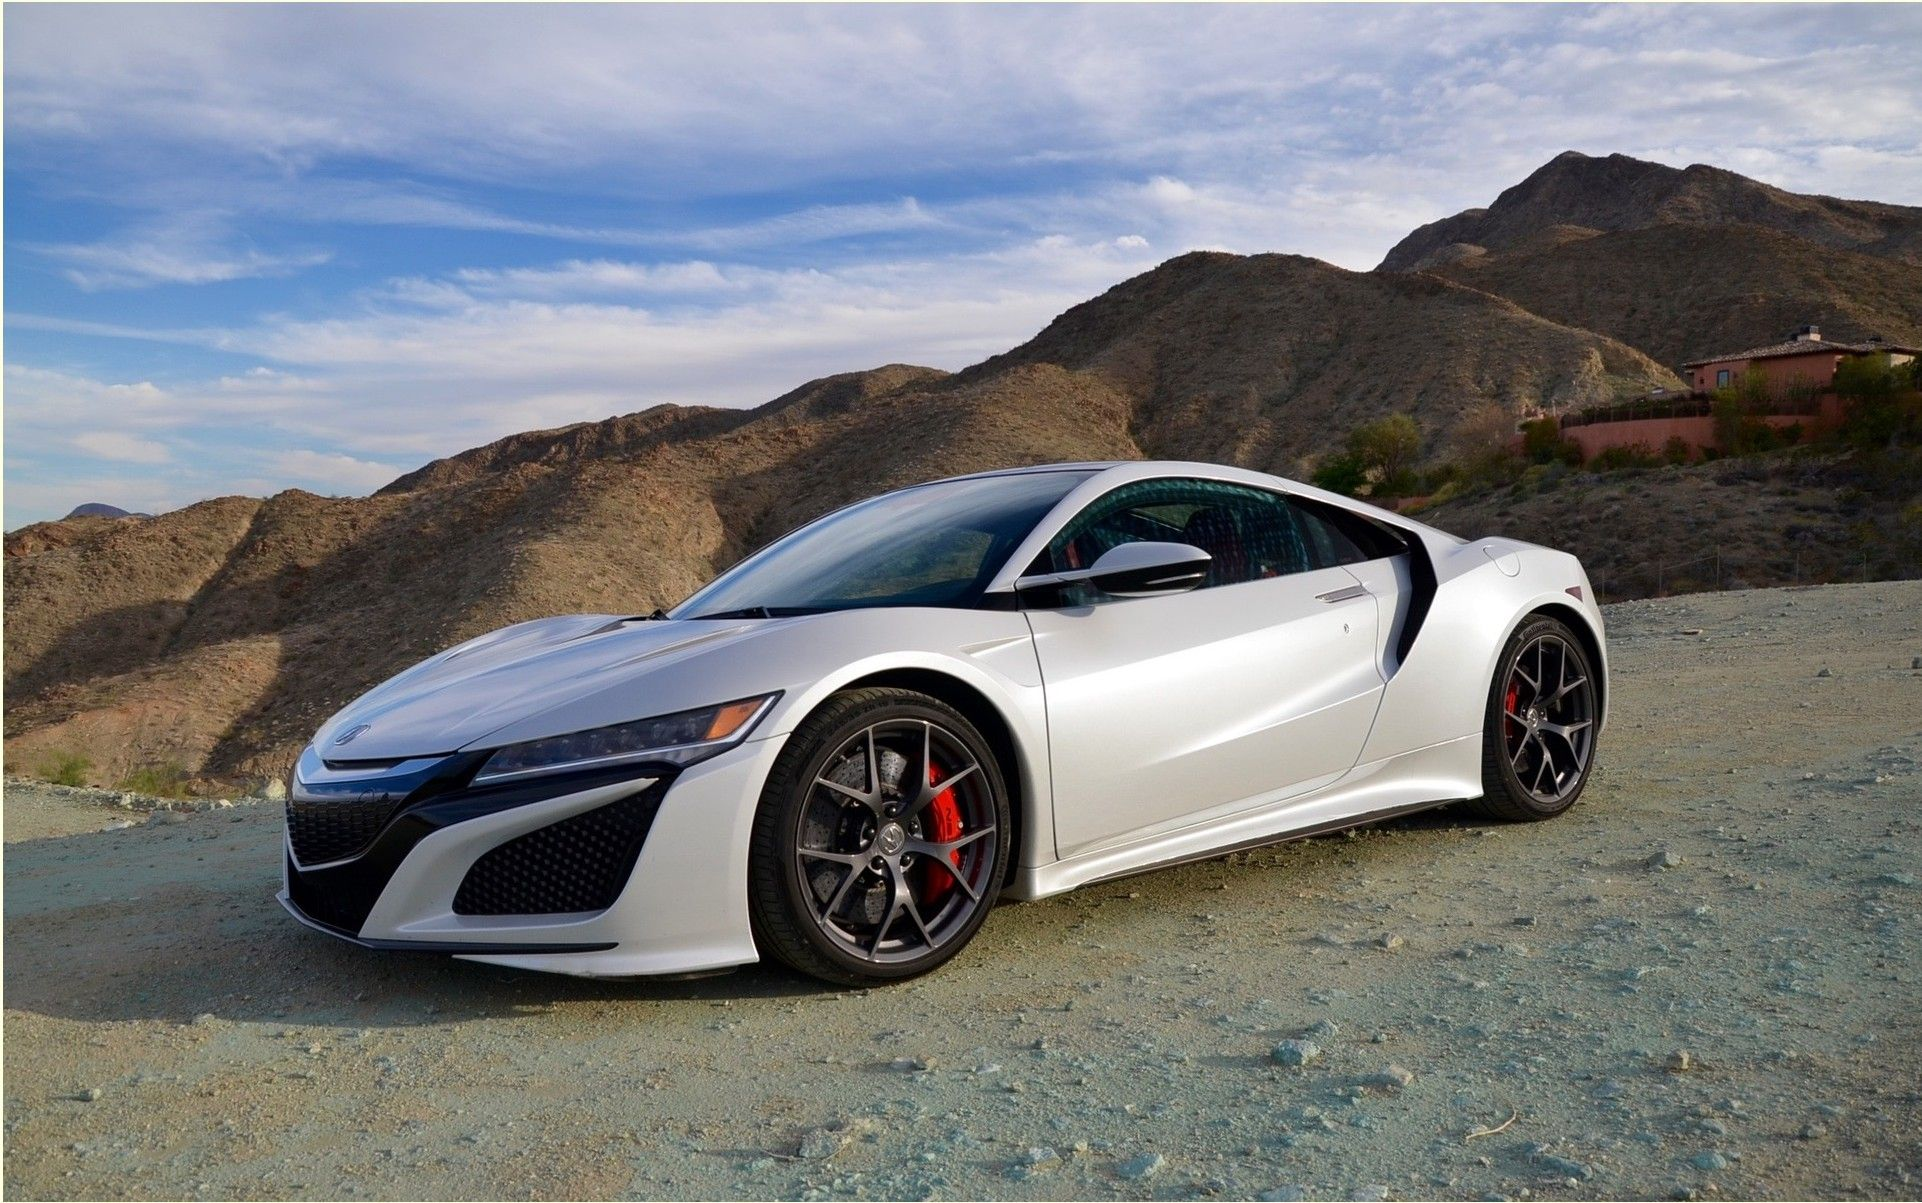 Acura NSX 2017 missile guided by laser beam Acura nsx, Nsx